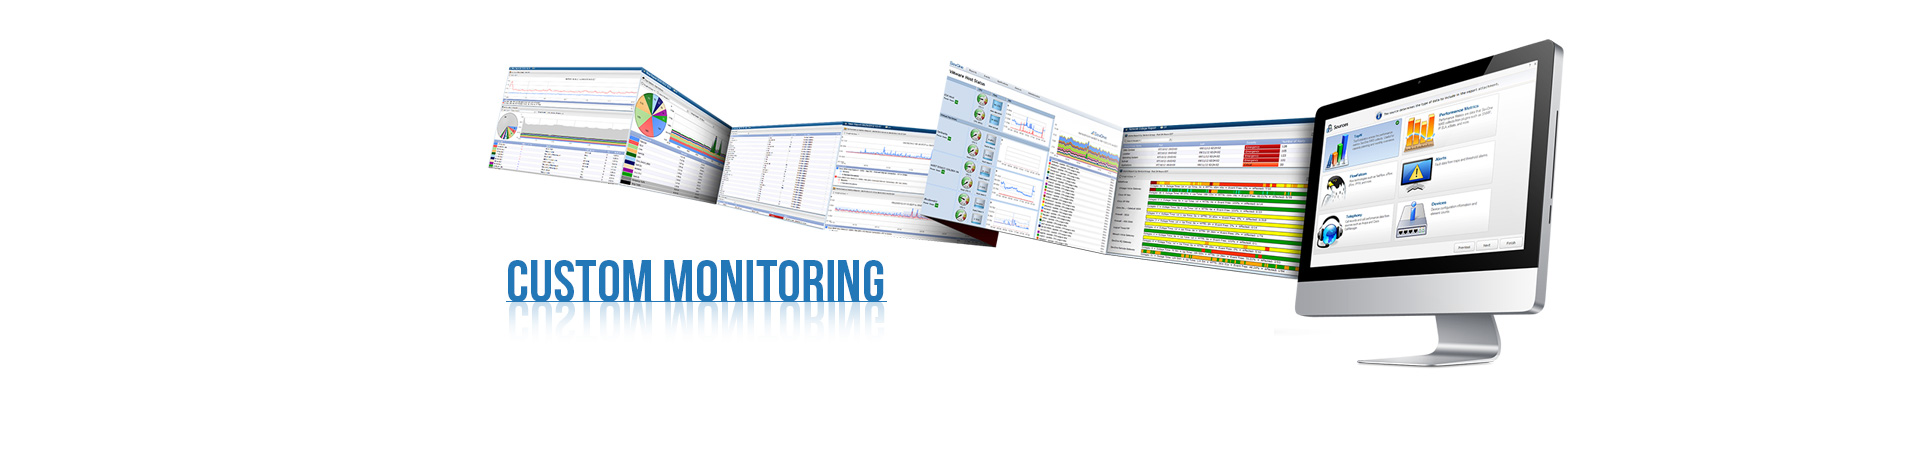 Custom Monitoring